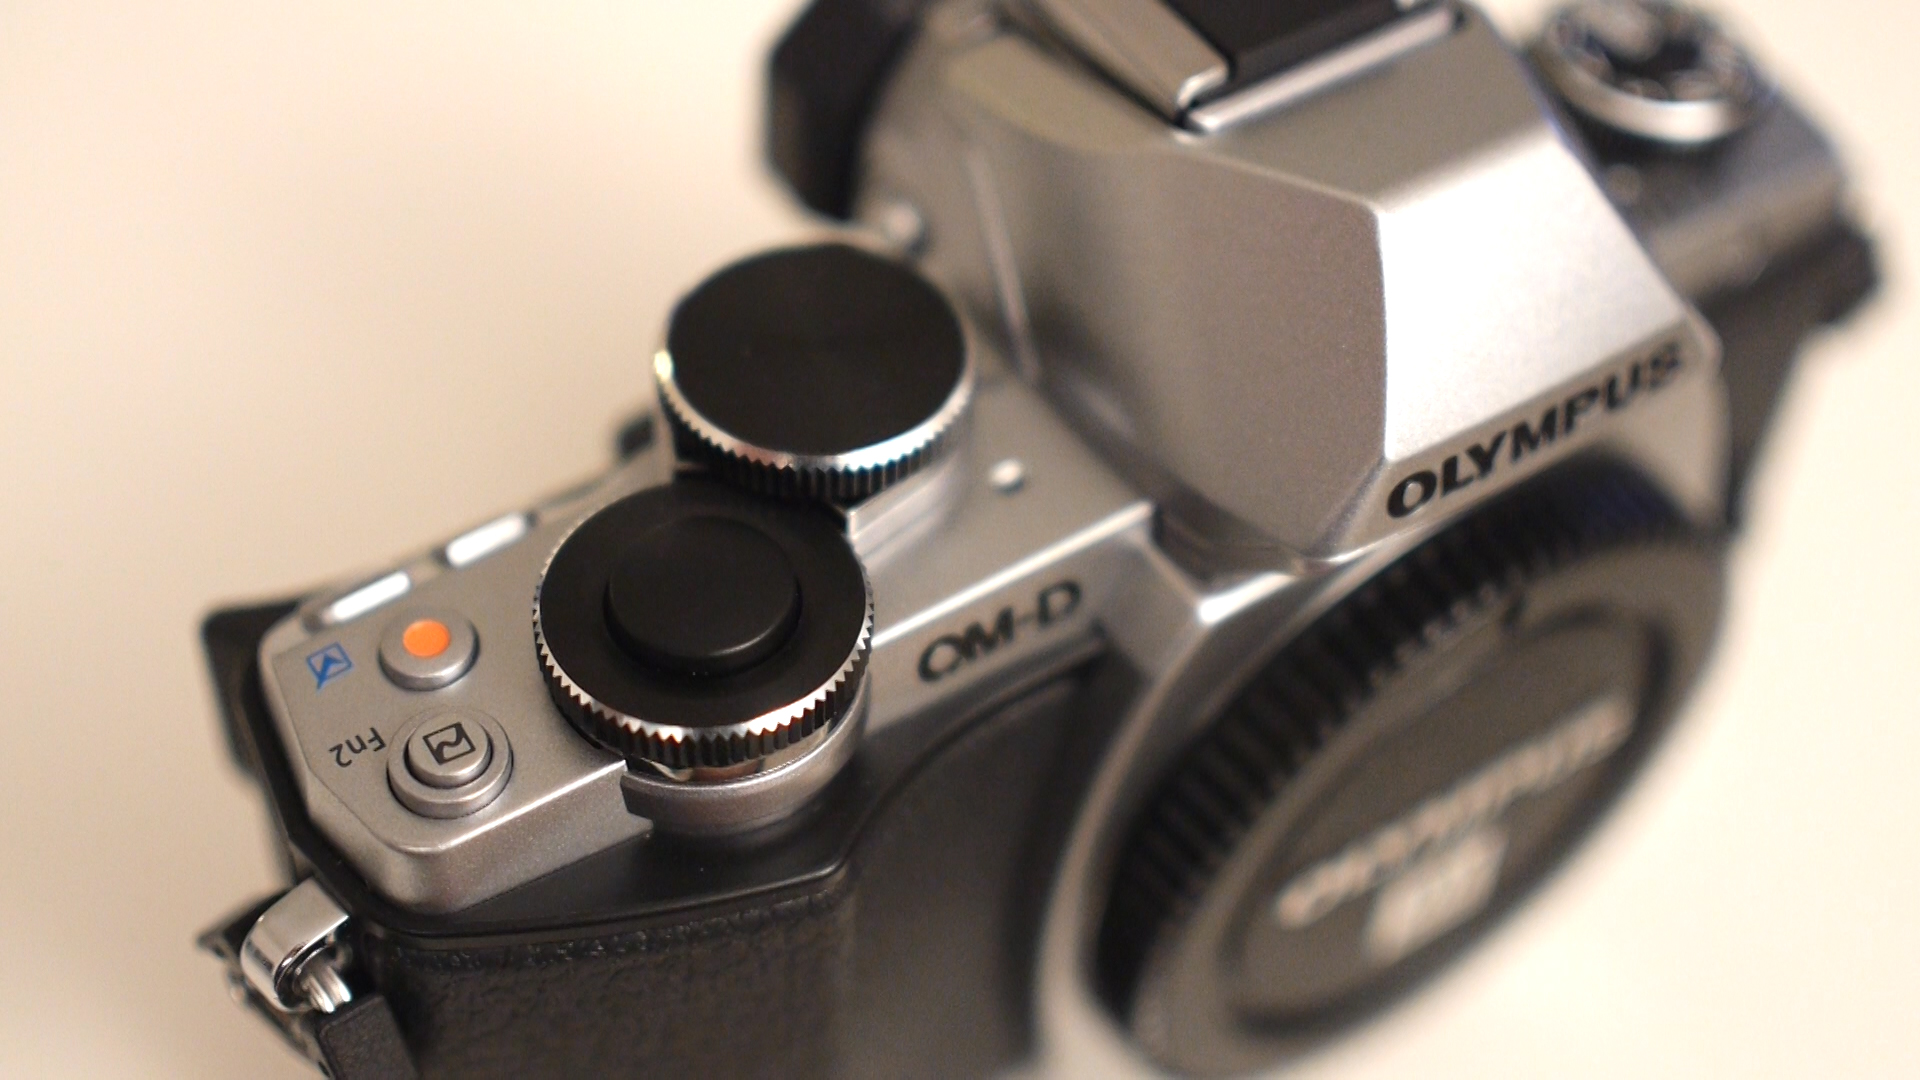 The Omd Family Welcomes A New Member First Impressions Of Olympus Om D E M10 Mark Iii Kit 14 42mm F 35 56 Ez Silver Shutter Release Button Is Bigger Which Makes It Nicer To Use In Comparison M5